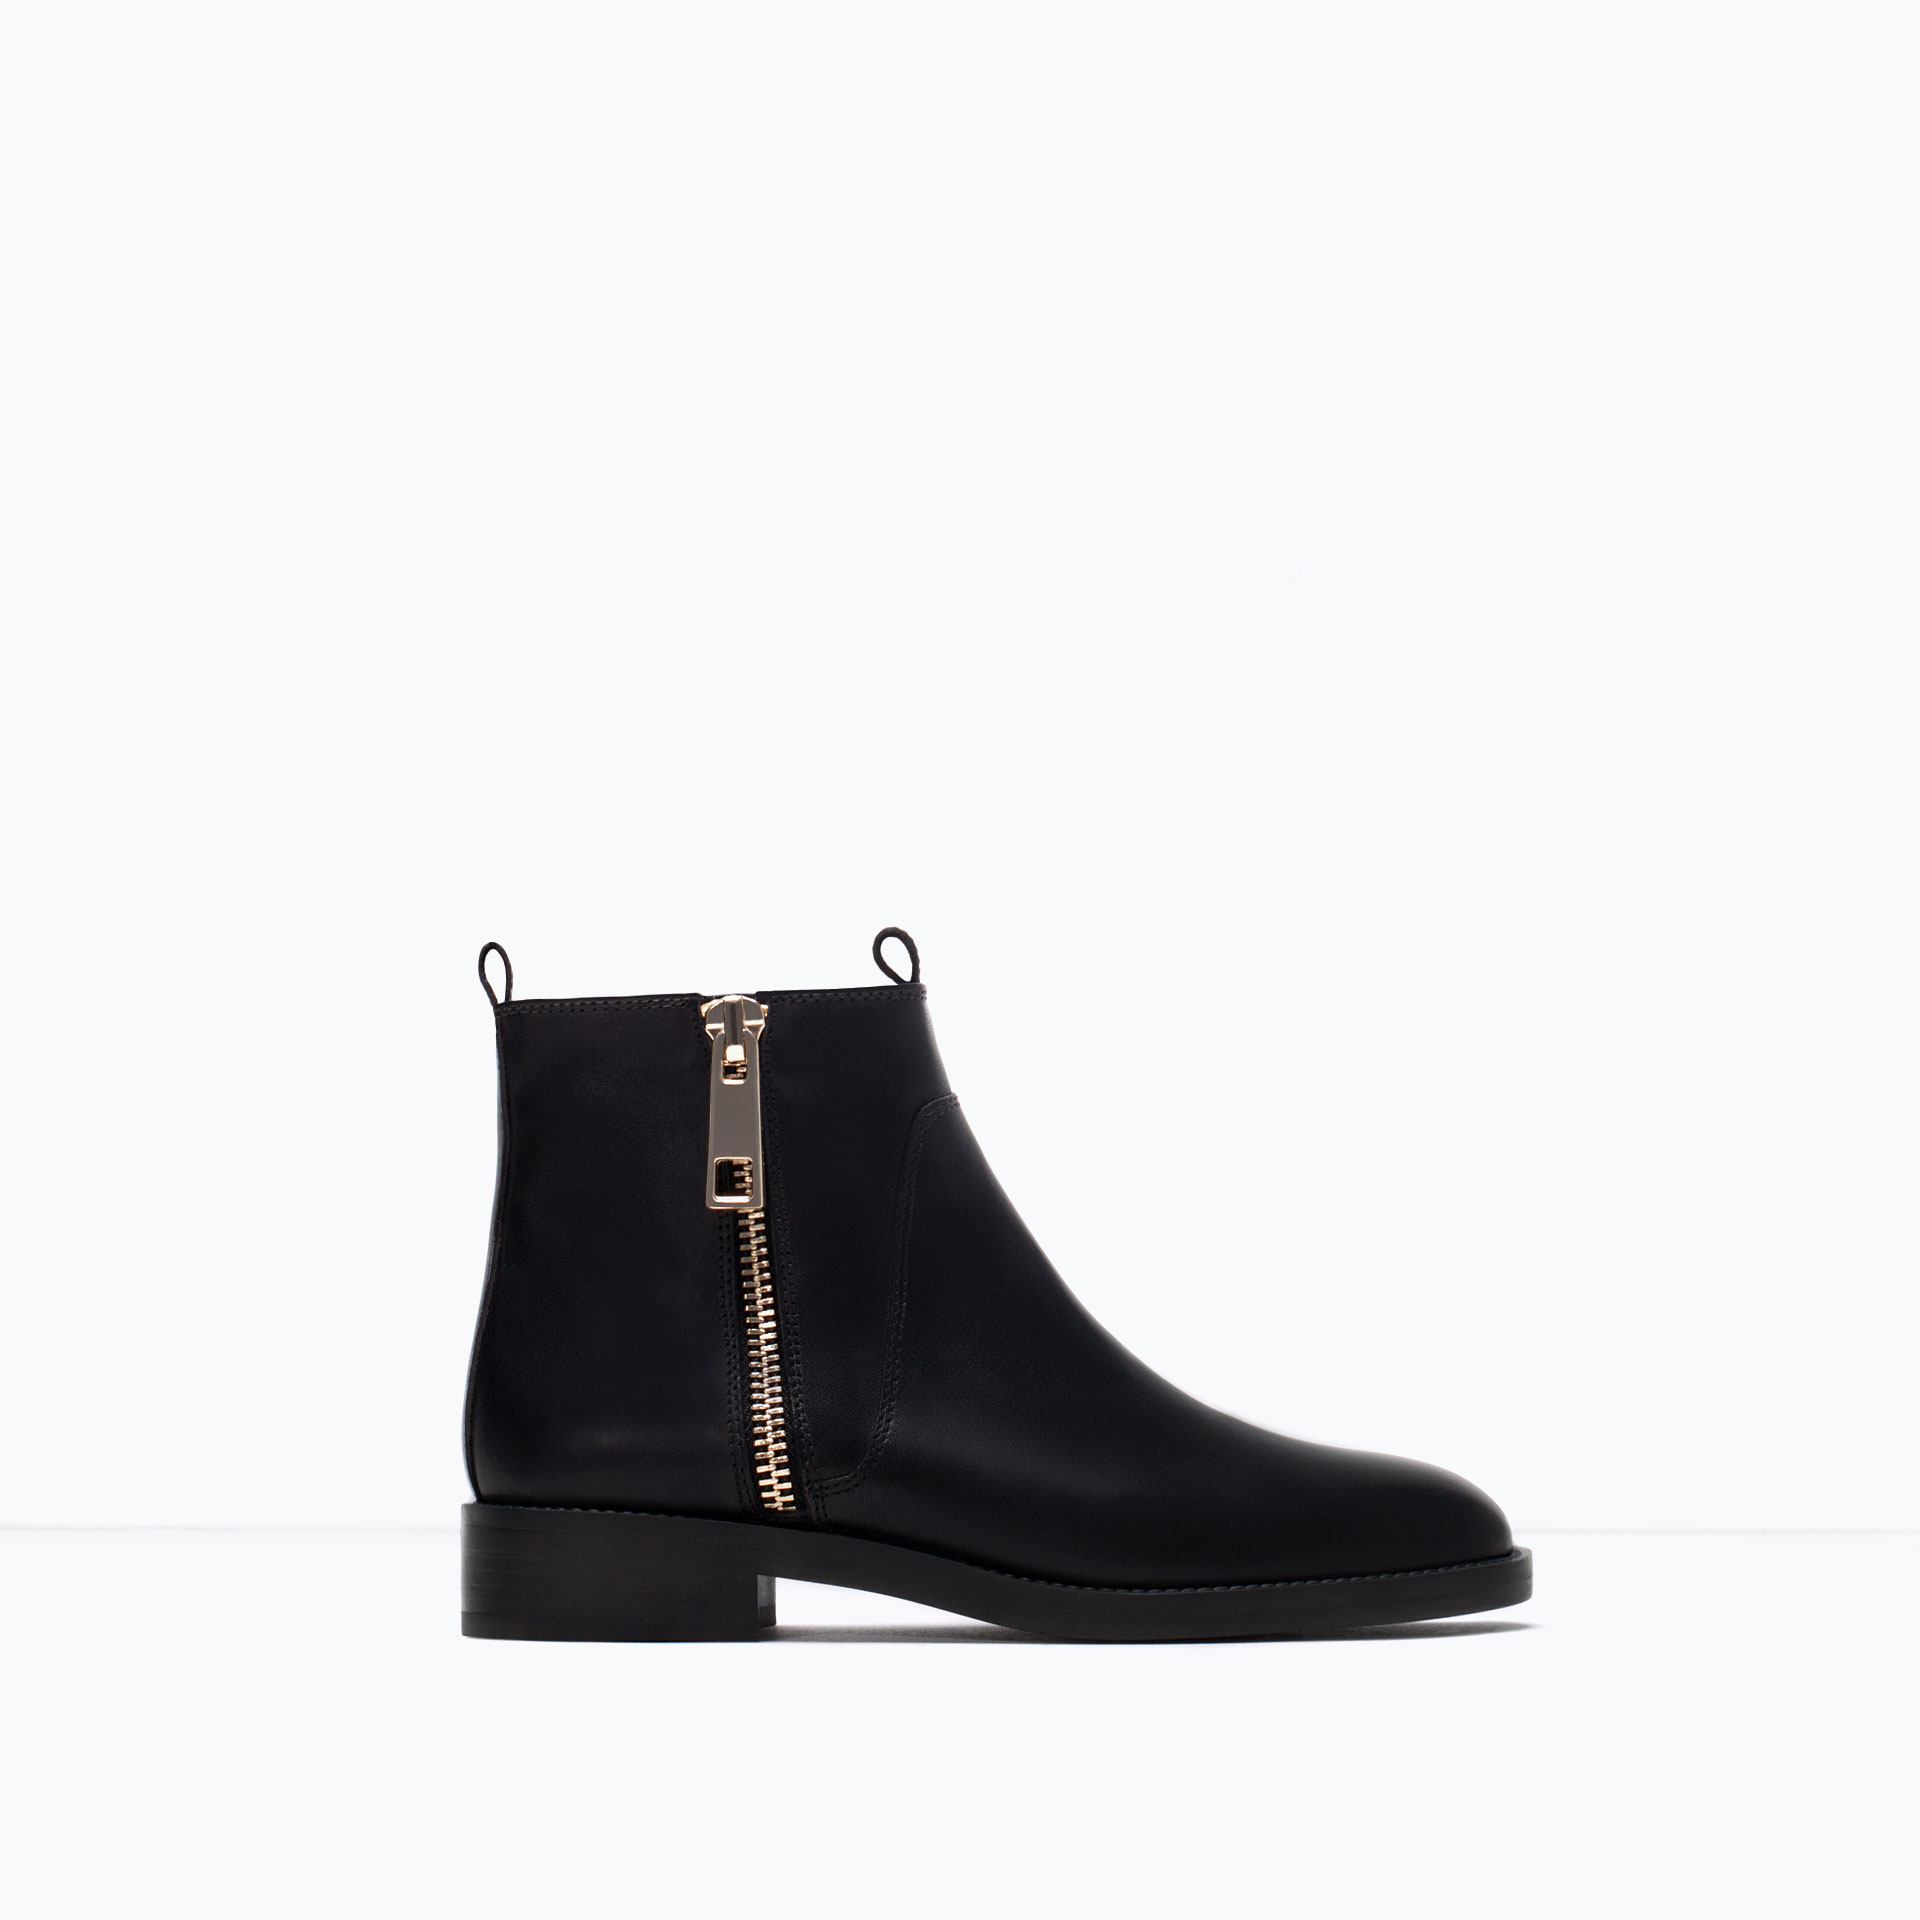 zara basic leather ankle boots in black lyst